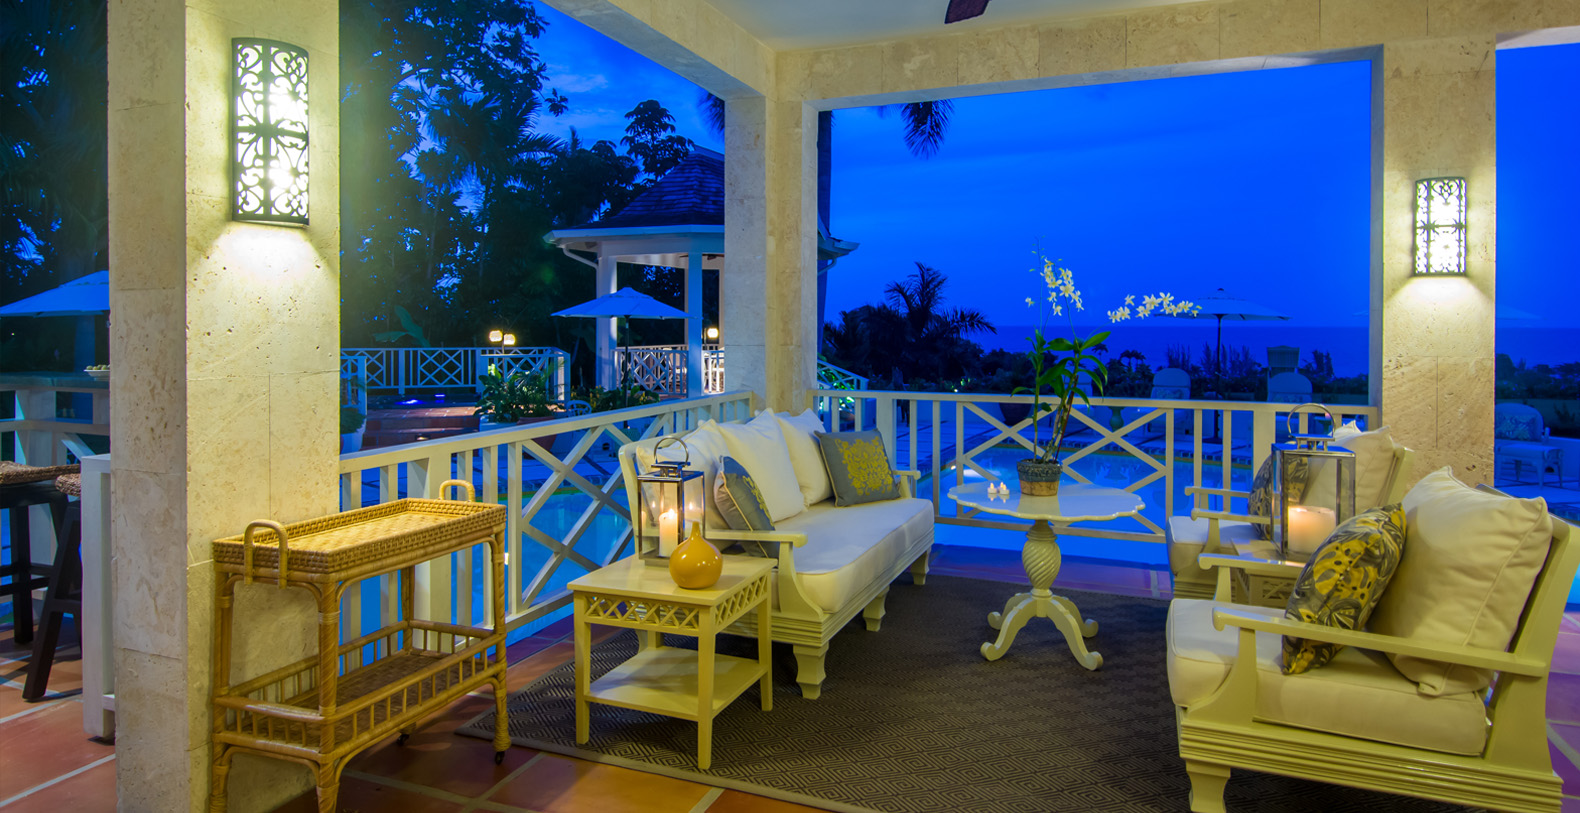 Pineapple house hanover holiday letting vacation rentals Jamaica vacation homes